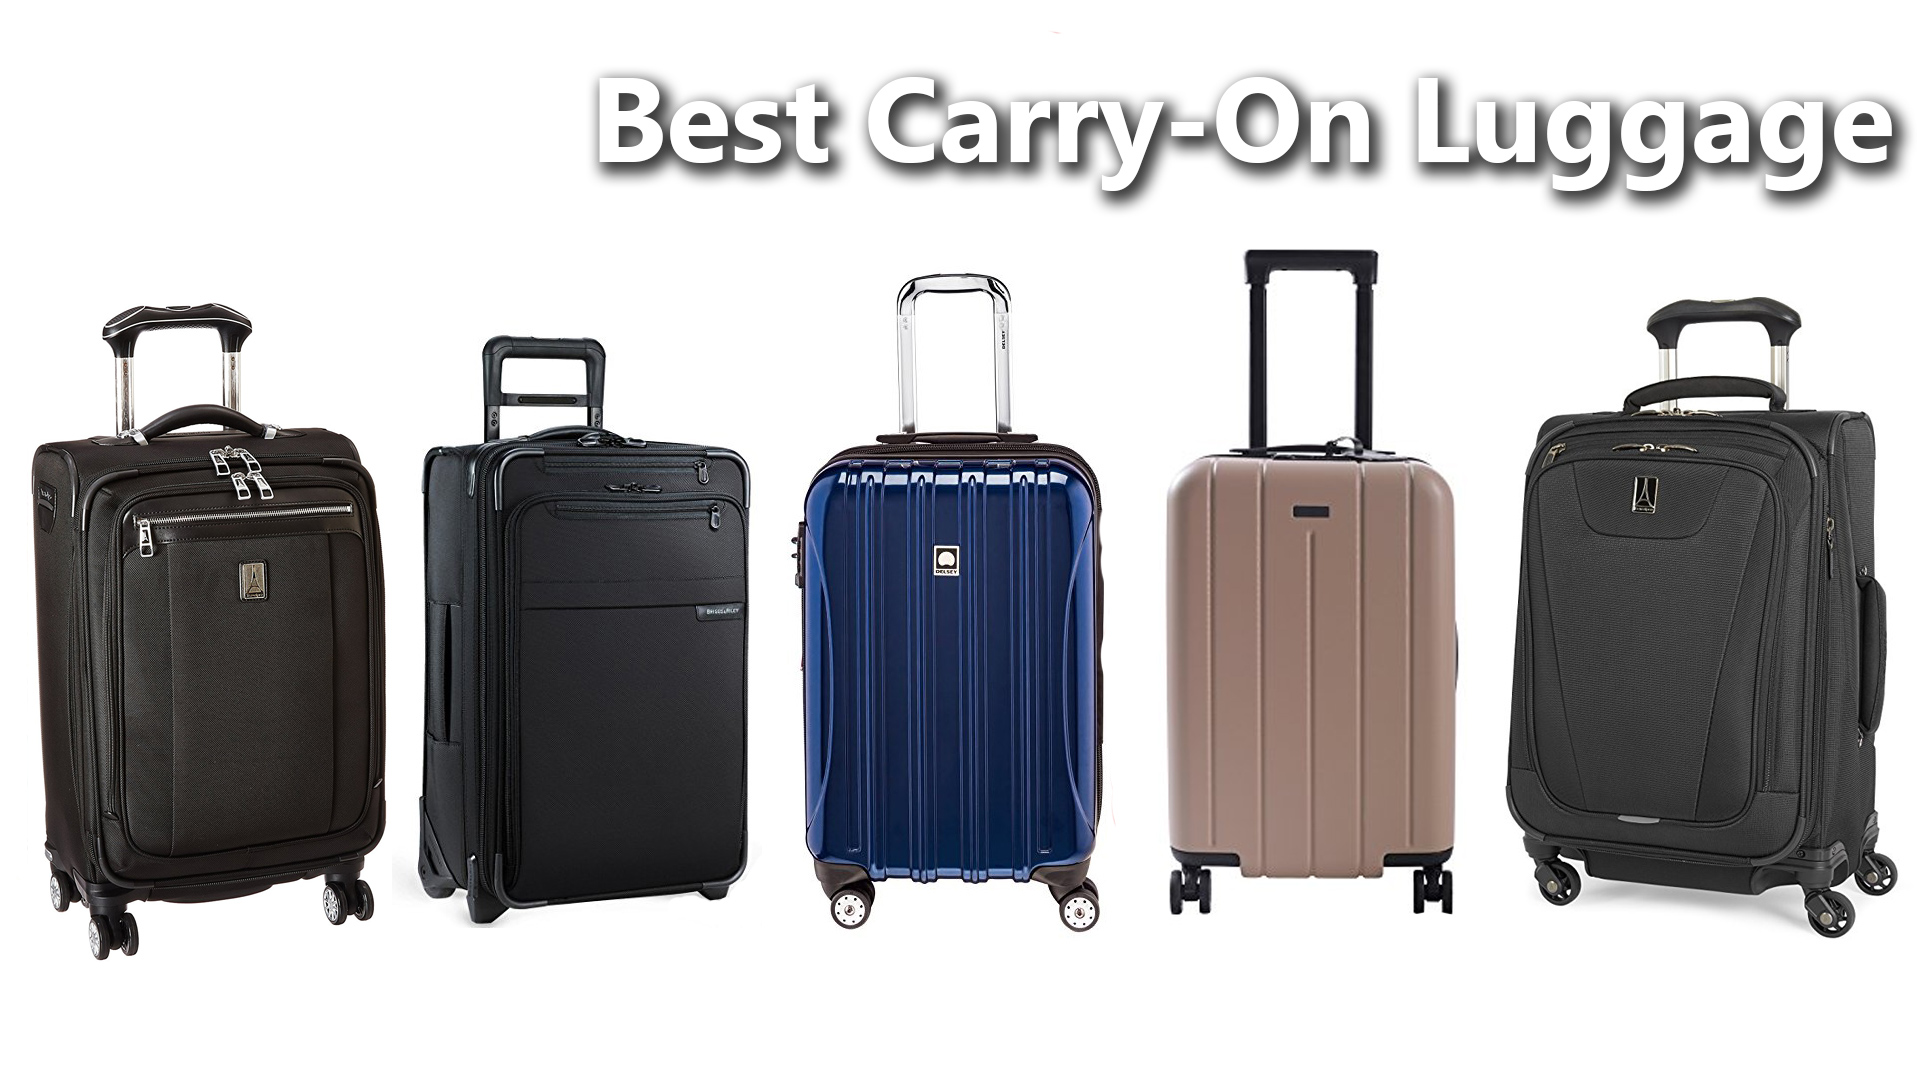 Best Rated Luggage 2020 The 6 Best Carry Ons to Make Travel Easy   Brian M. Fischer